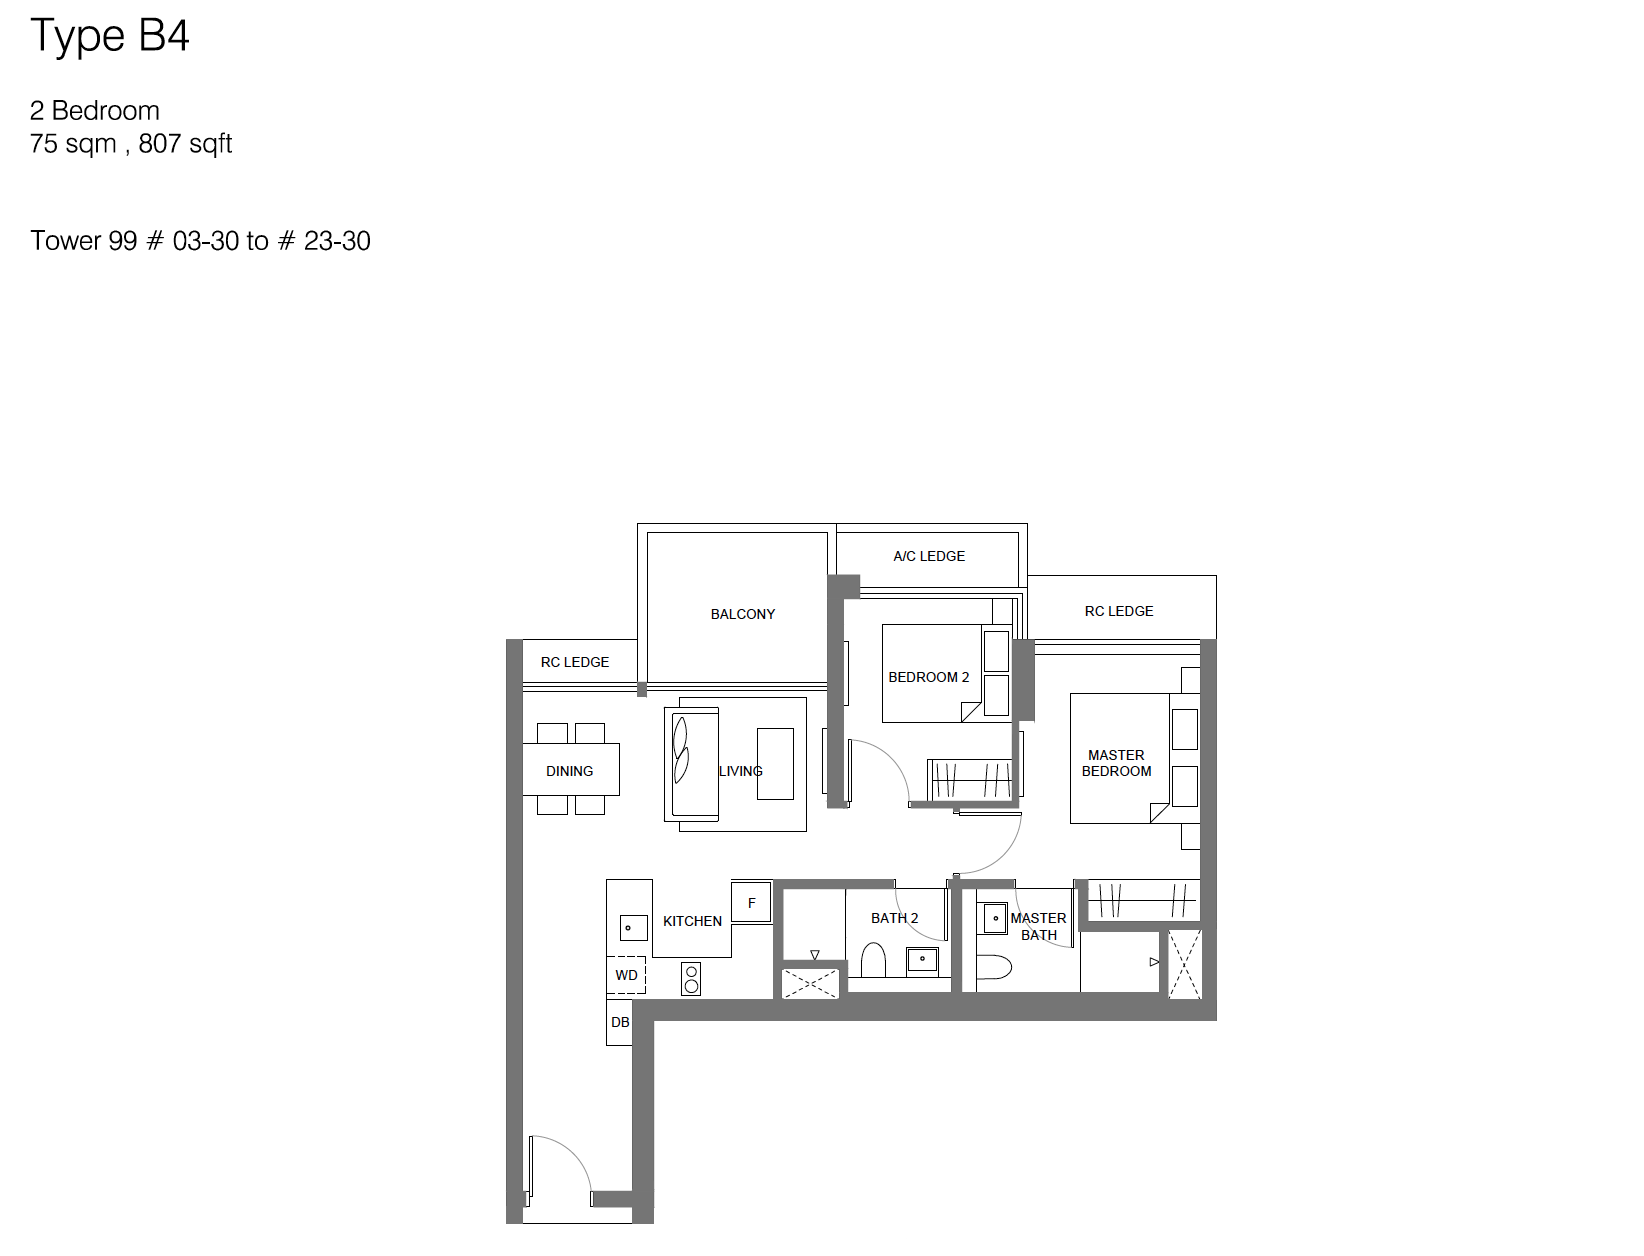 Principal Garden floor plan - 2 bedroom (type B4)